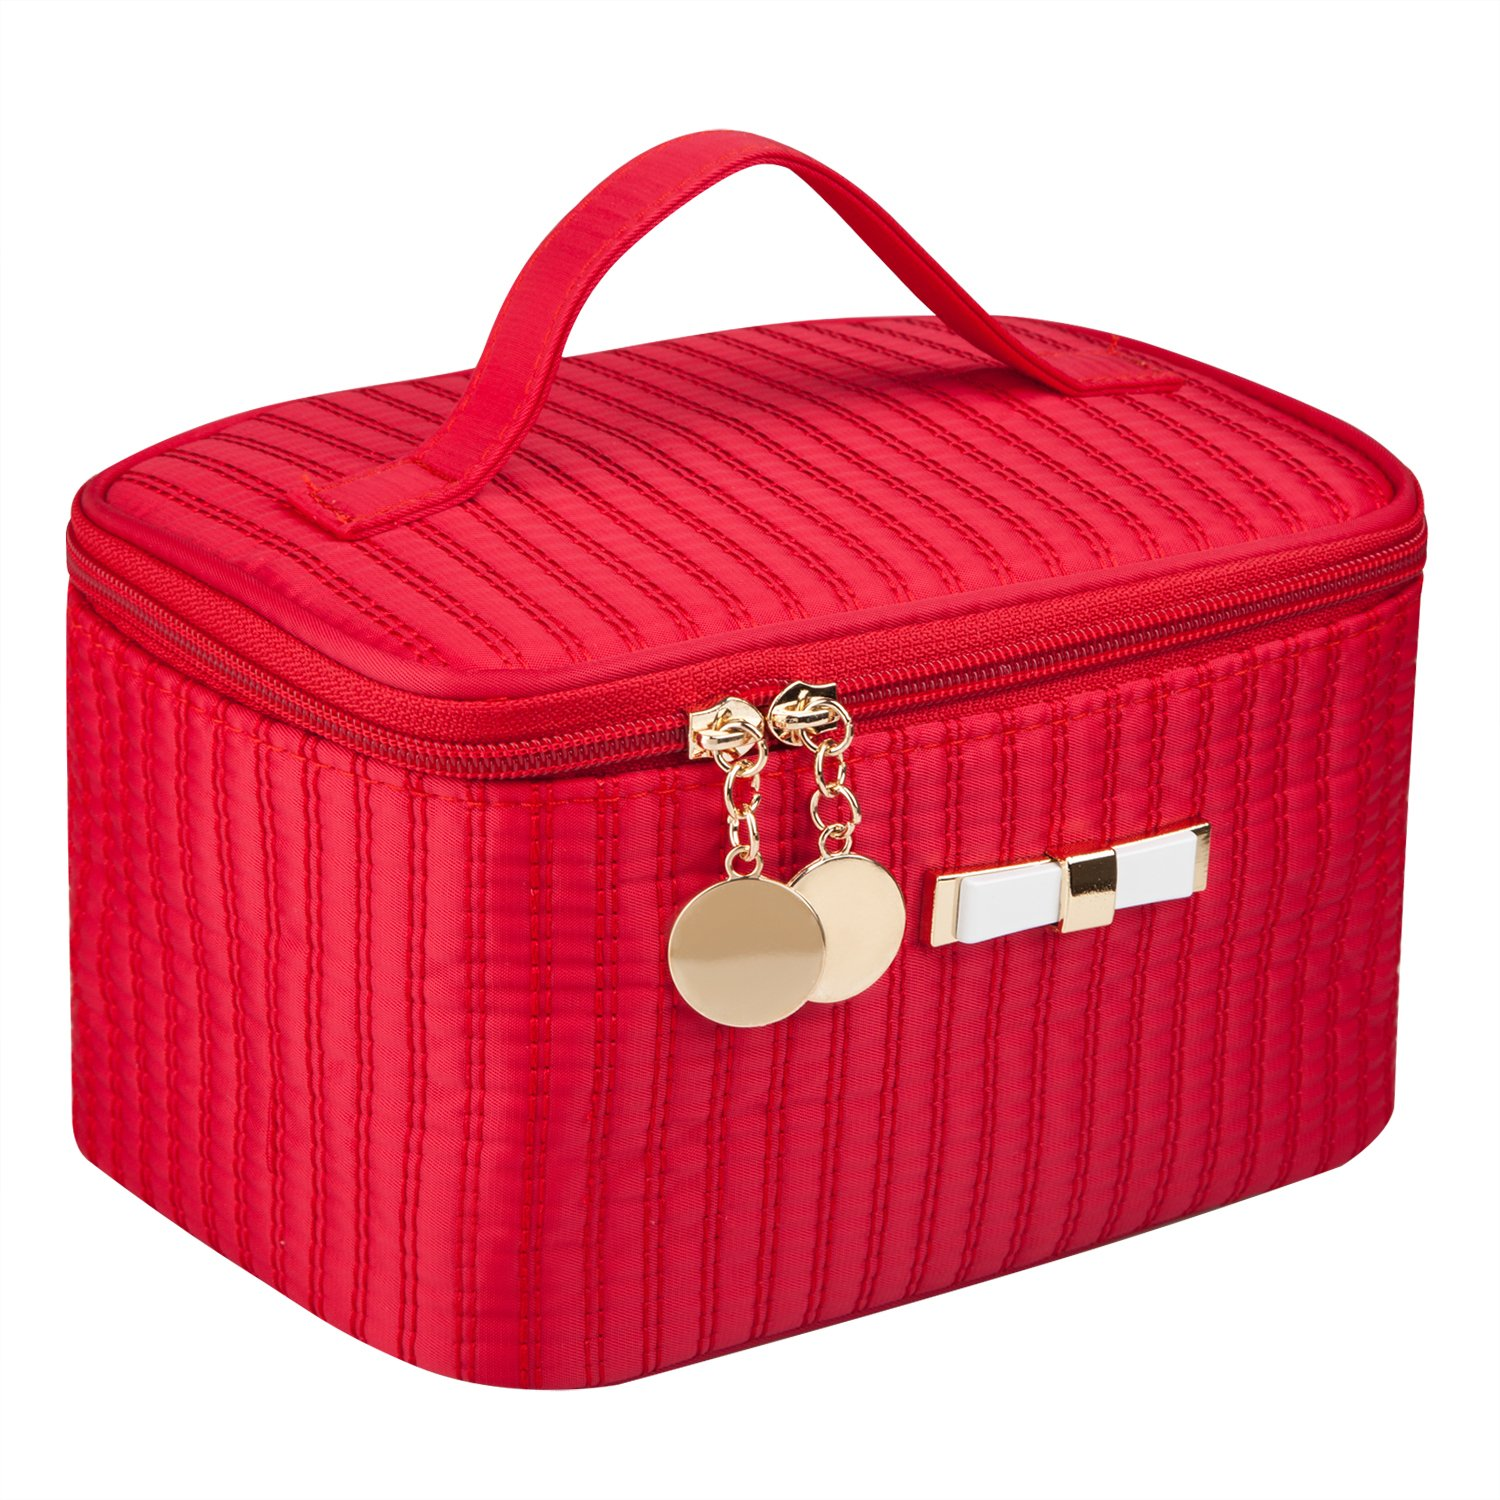 "EN'DA Portable Cosmetic Toiletry Bags Cute Makeup Travel Bags with Mirror 7.9"" (Red)"